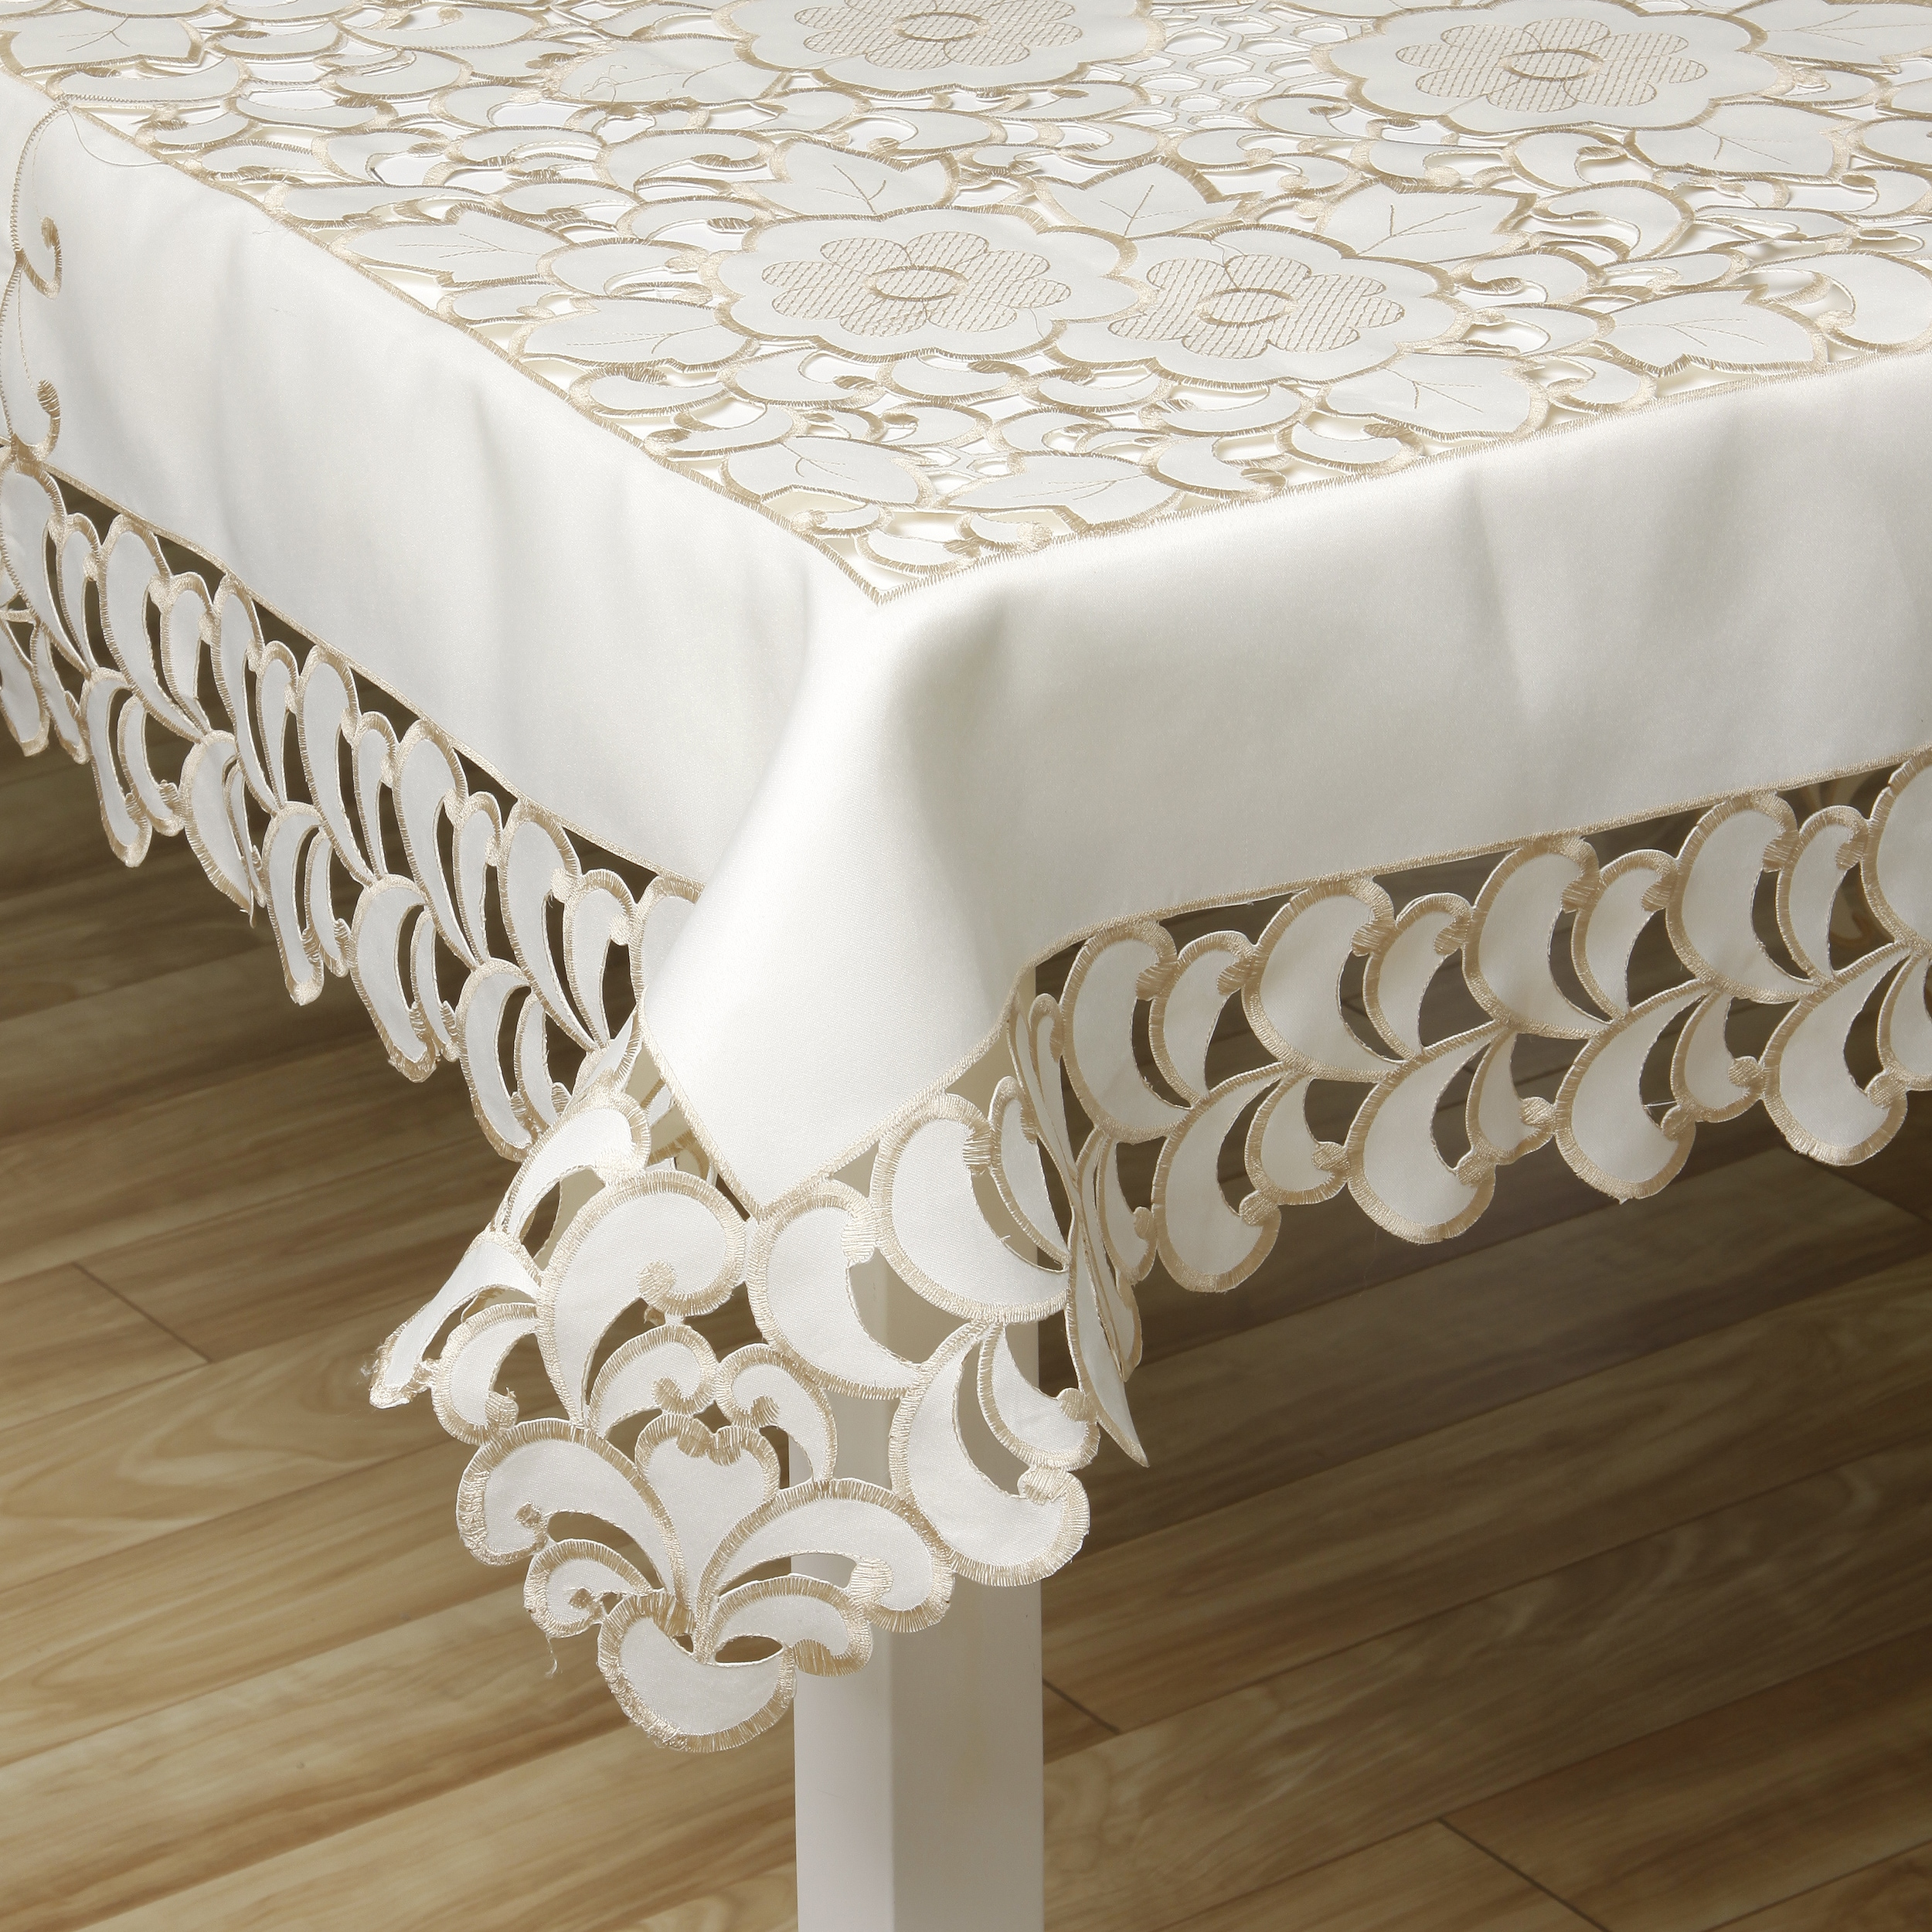 Prestige Two Tone French Floral Lace Table Linen 72 x 144 inches at Sears.com